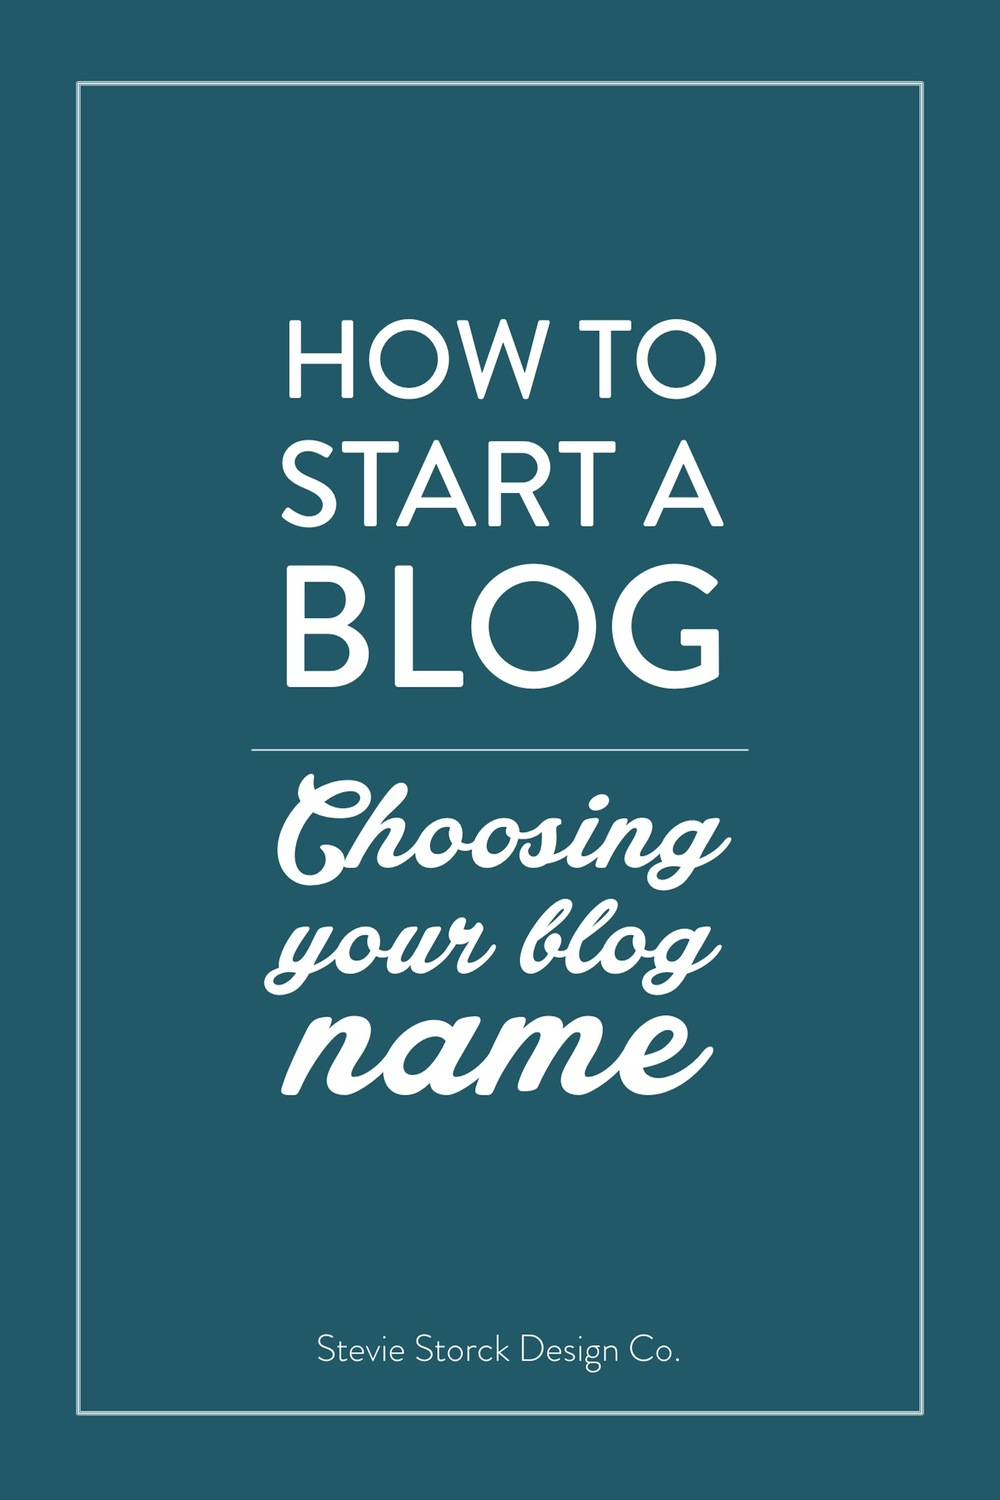 How To Start A Blog | Choosing a Name - Stevie Storck Design Co.